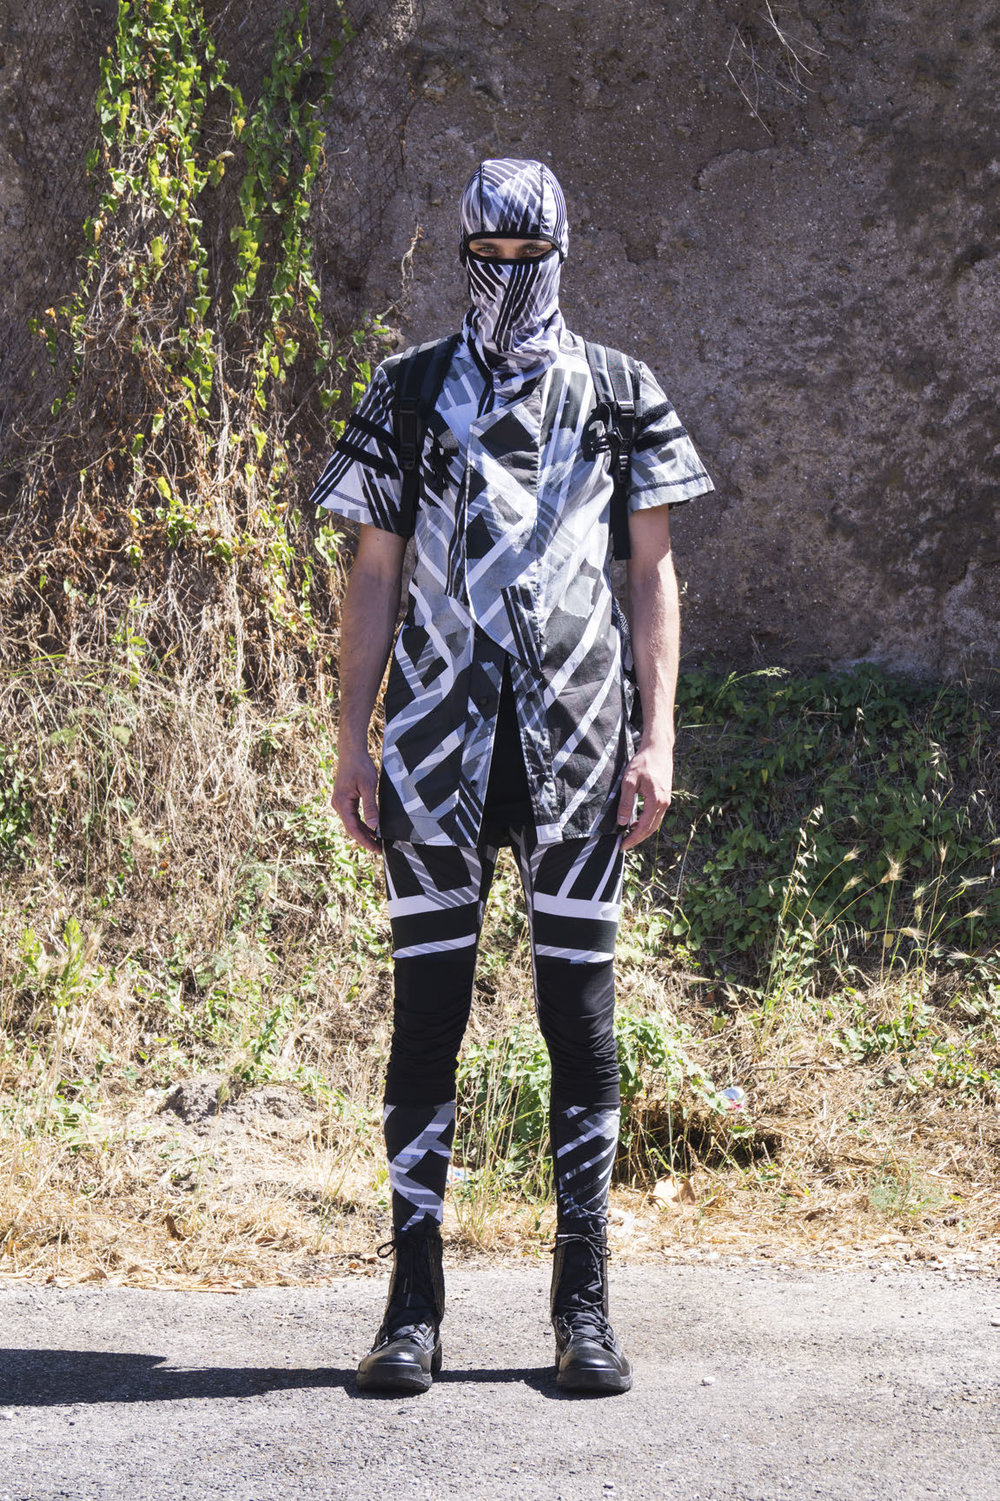 GALLSS18_UNBORNSURVIVAL_LOOKBOOK_MANRED (3)_Page_08.jpg